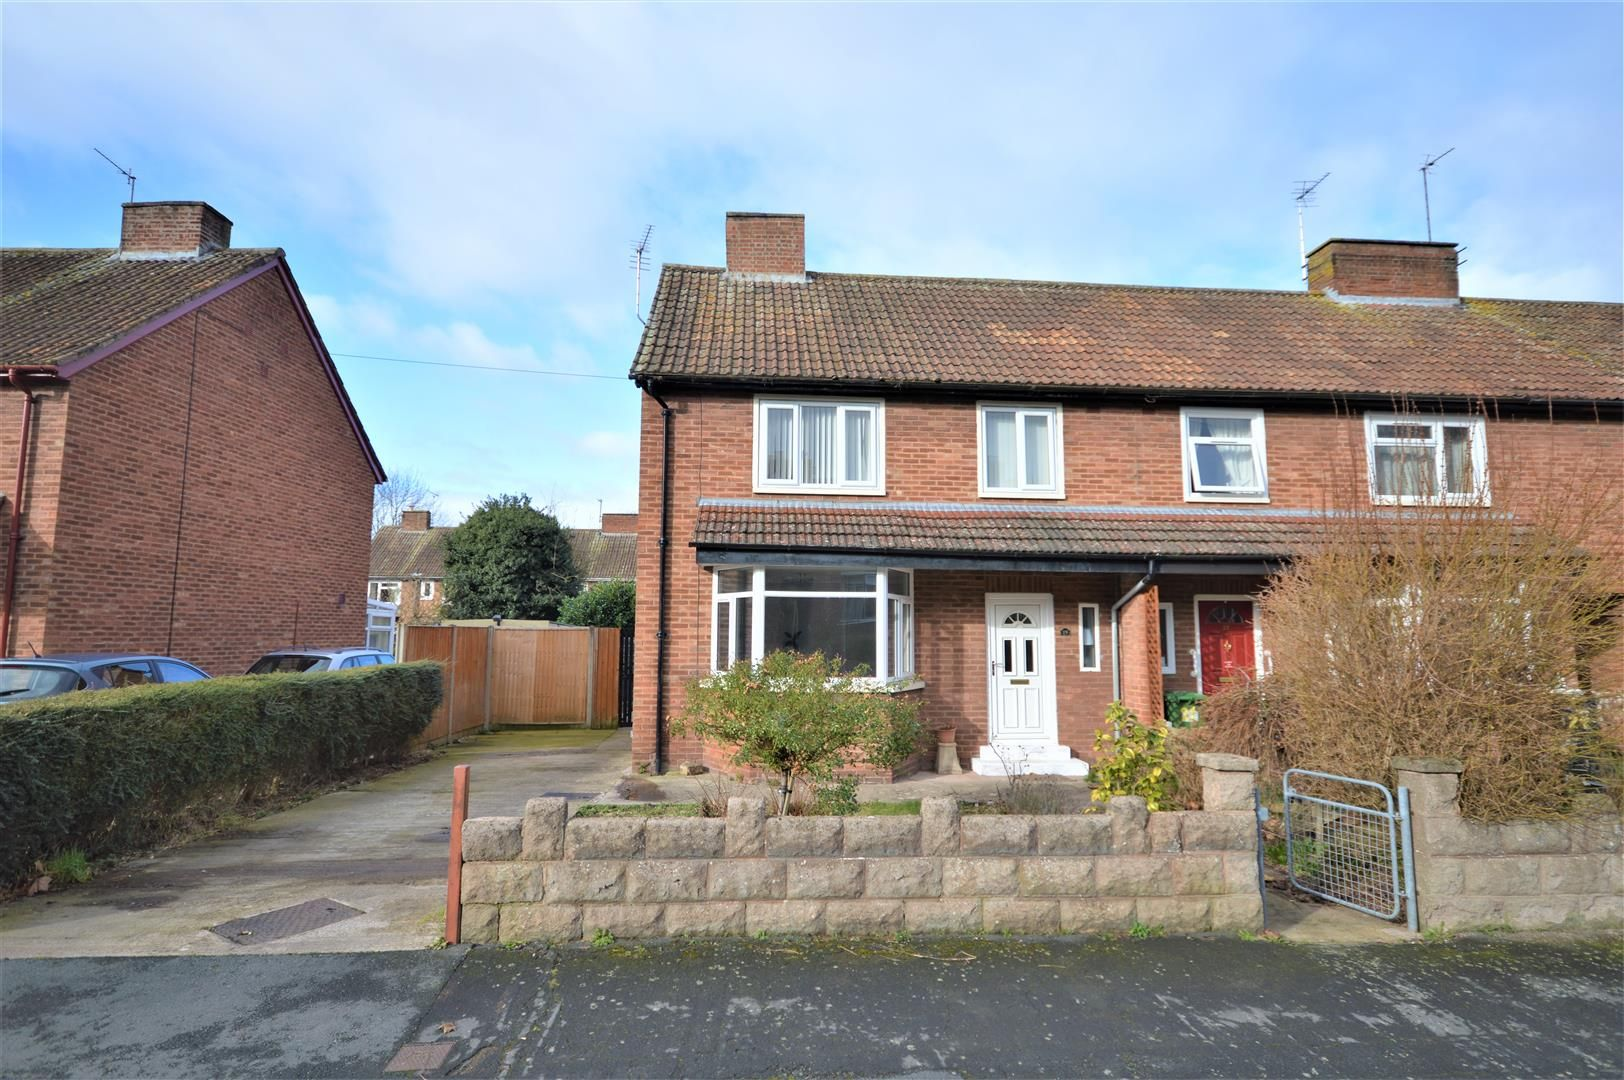 3 bed end-of-terrace for sale in Hereford 1